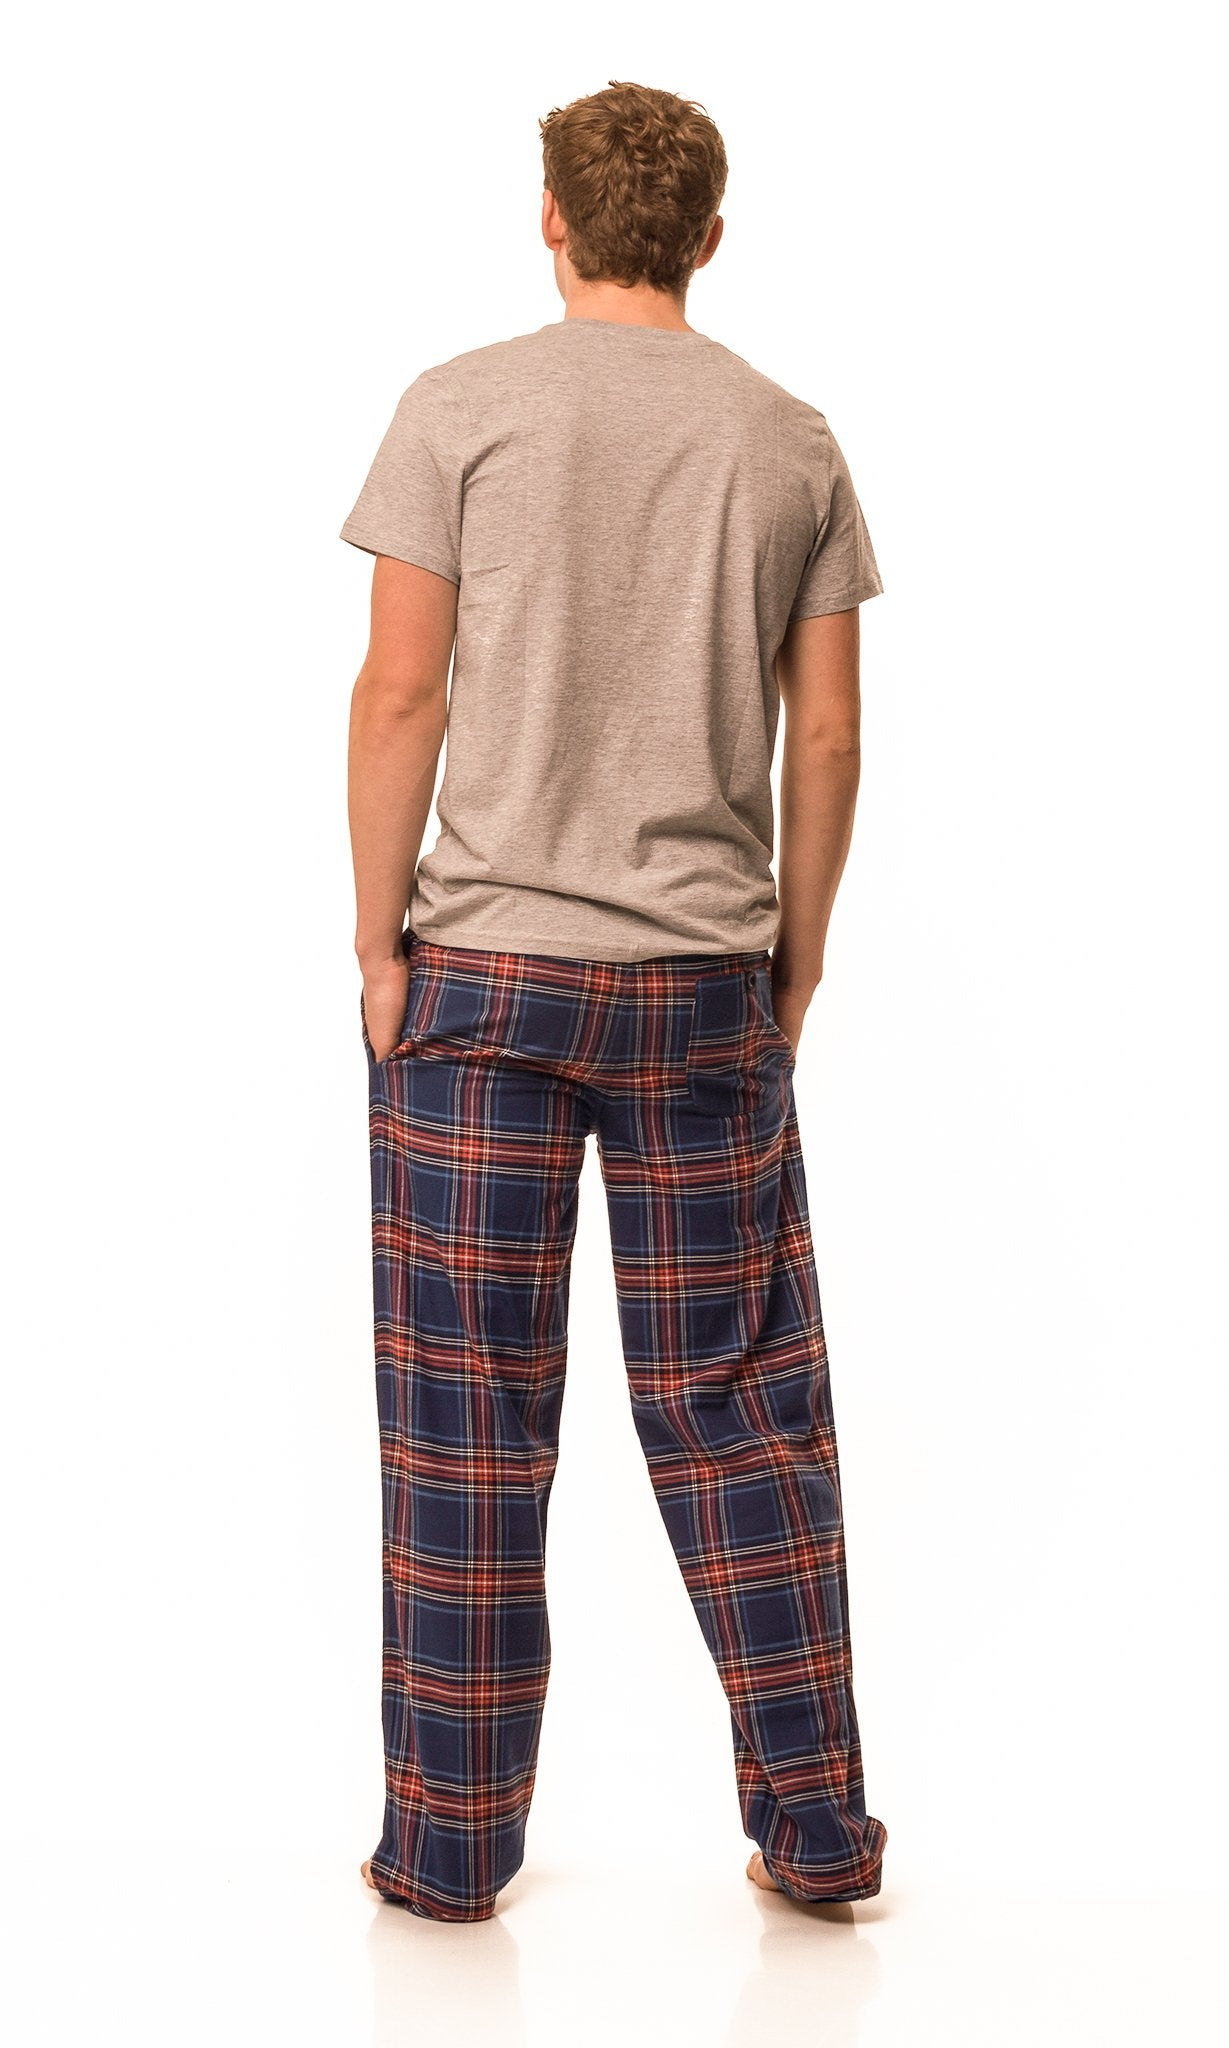 Frensham Blue/red check lounge pants - Men's